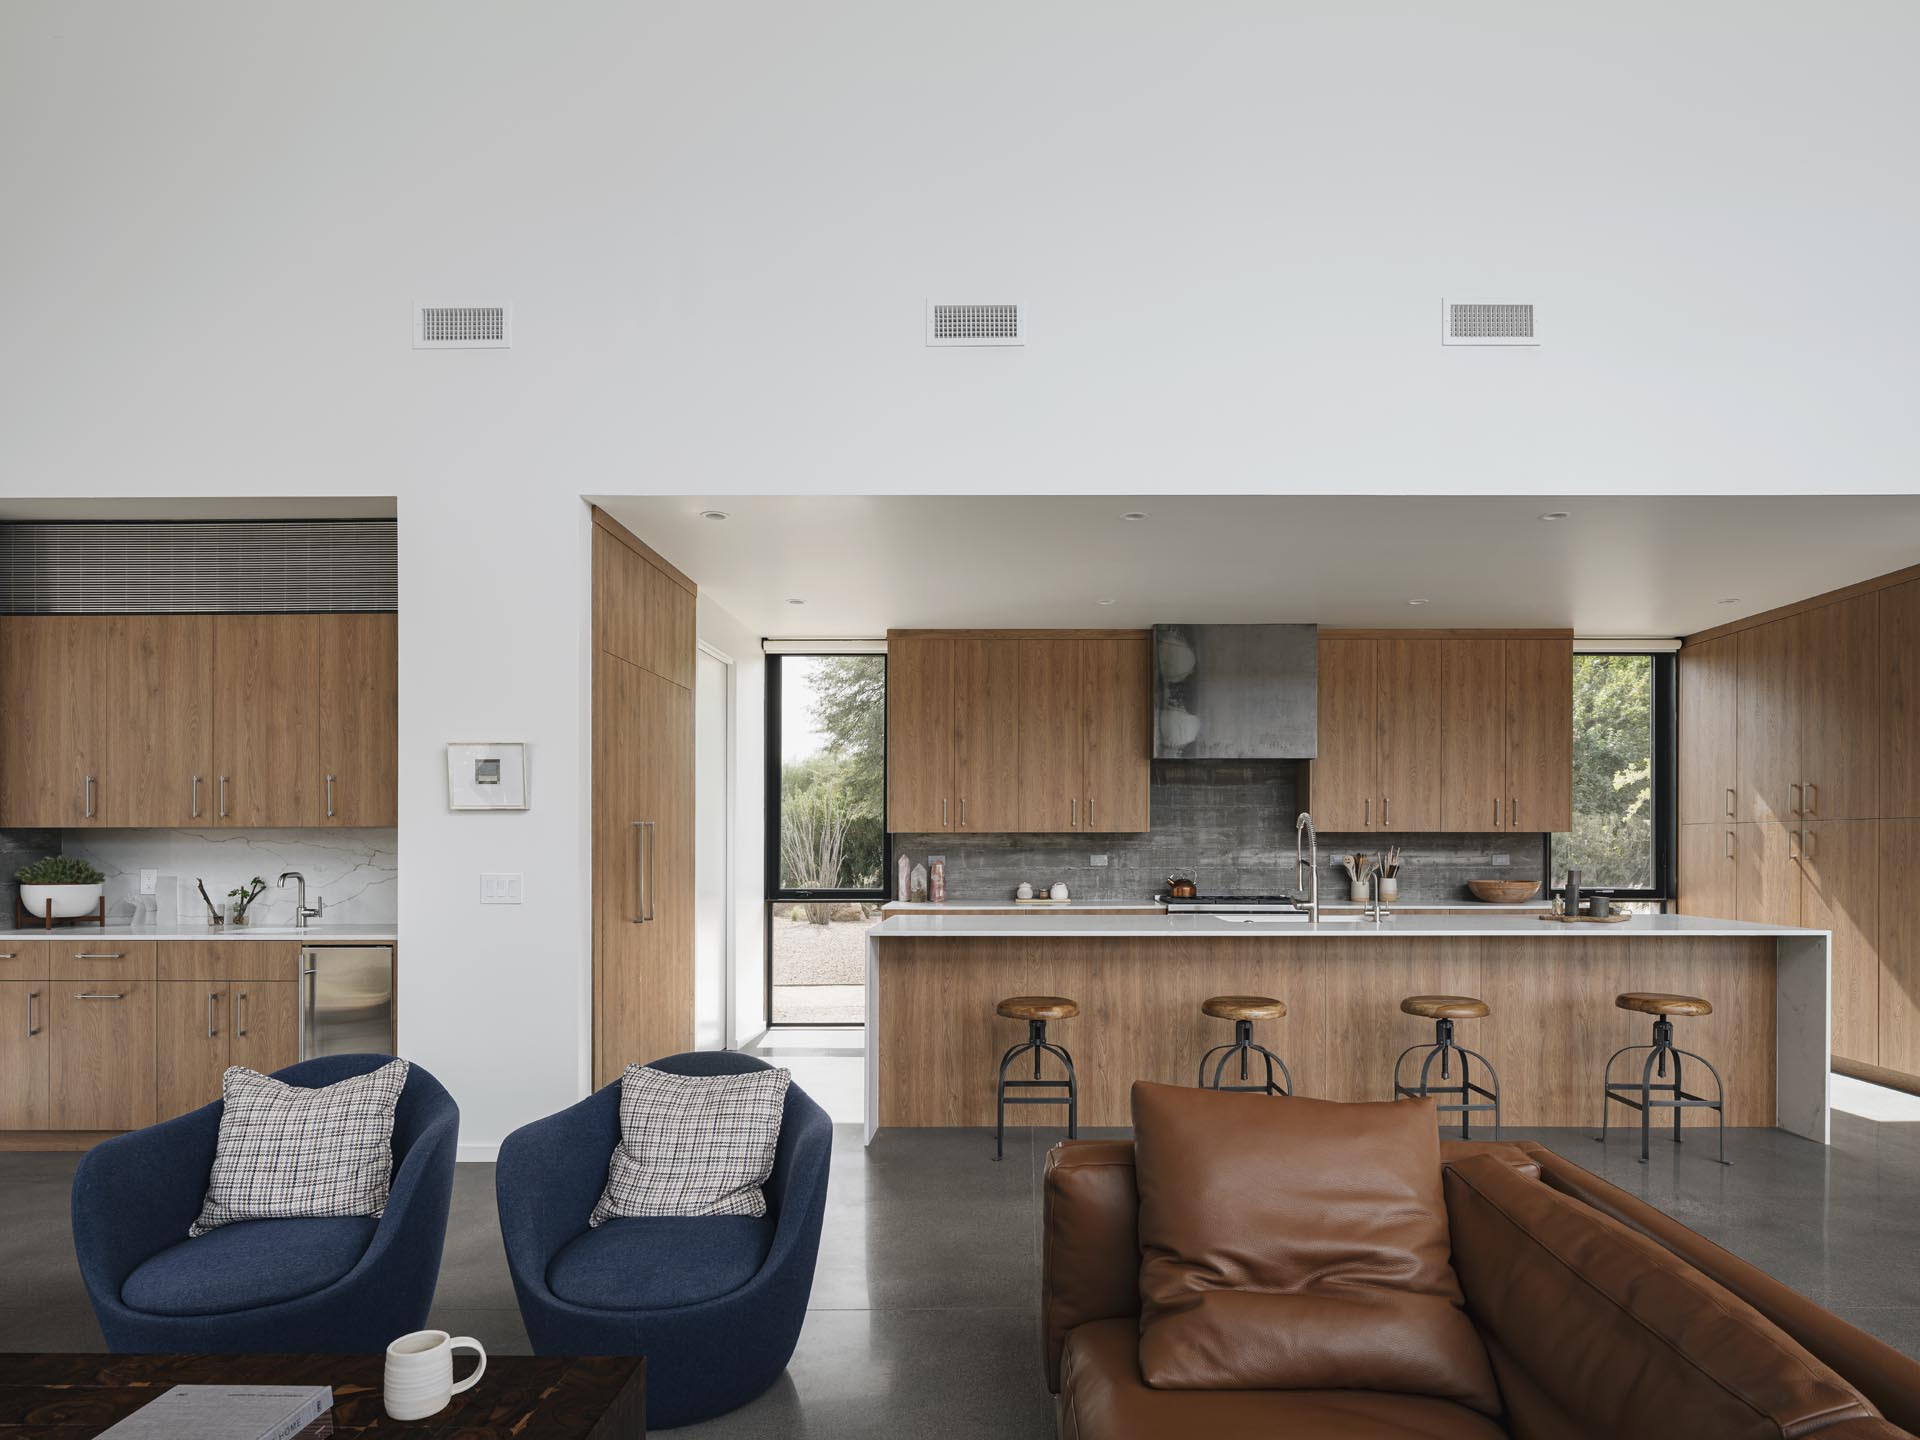 The wood cabinetry in the kitchen has been installed right up against the board-formed concrete wall, while a long kitchen island creates plenty of counter space.